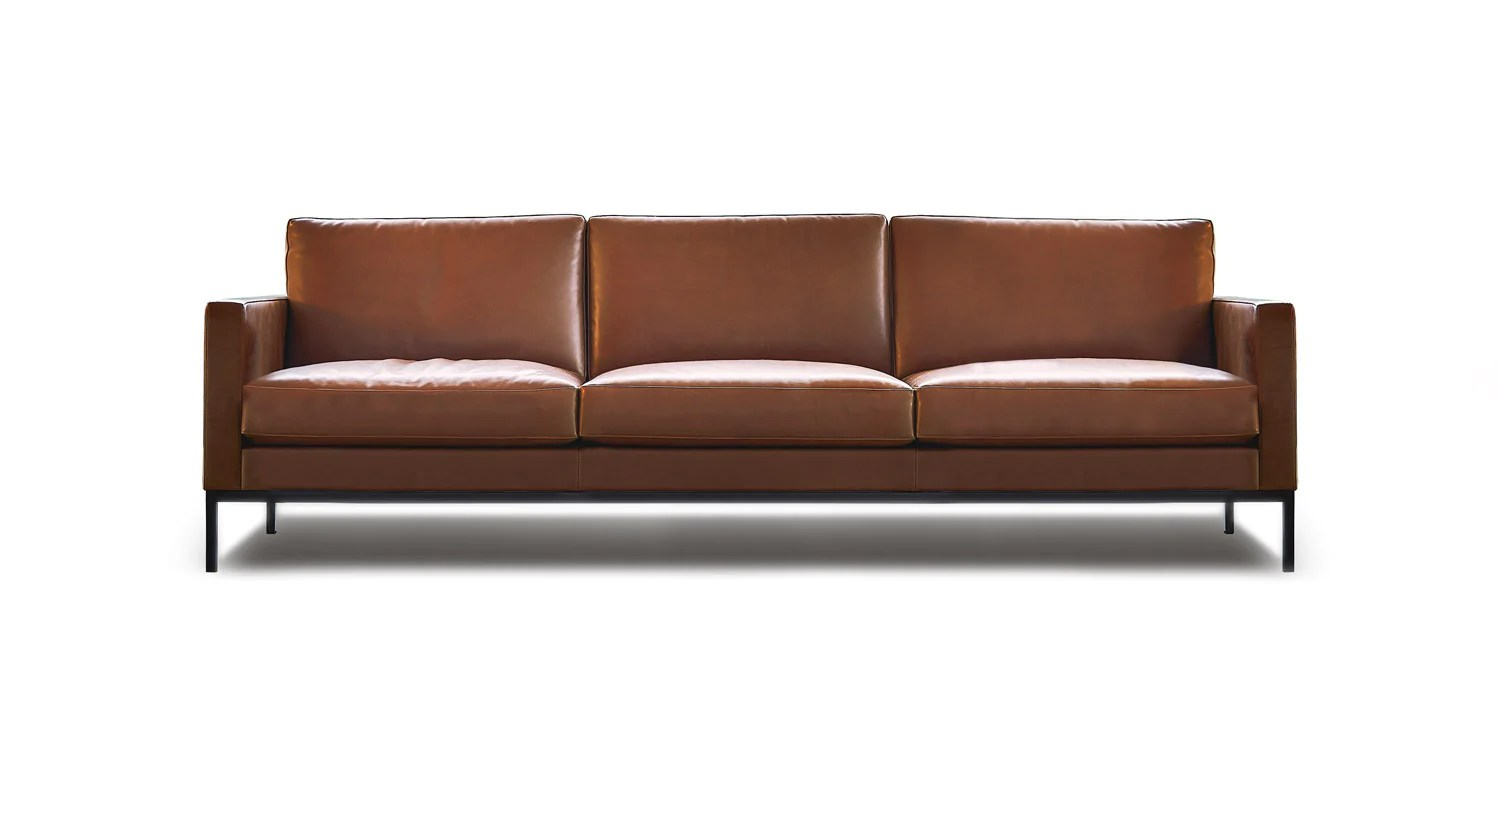 Florence Knoll Sessel Florence Knoll Relax 3 Seat Sofa Untufted